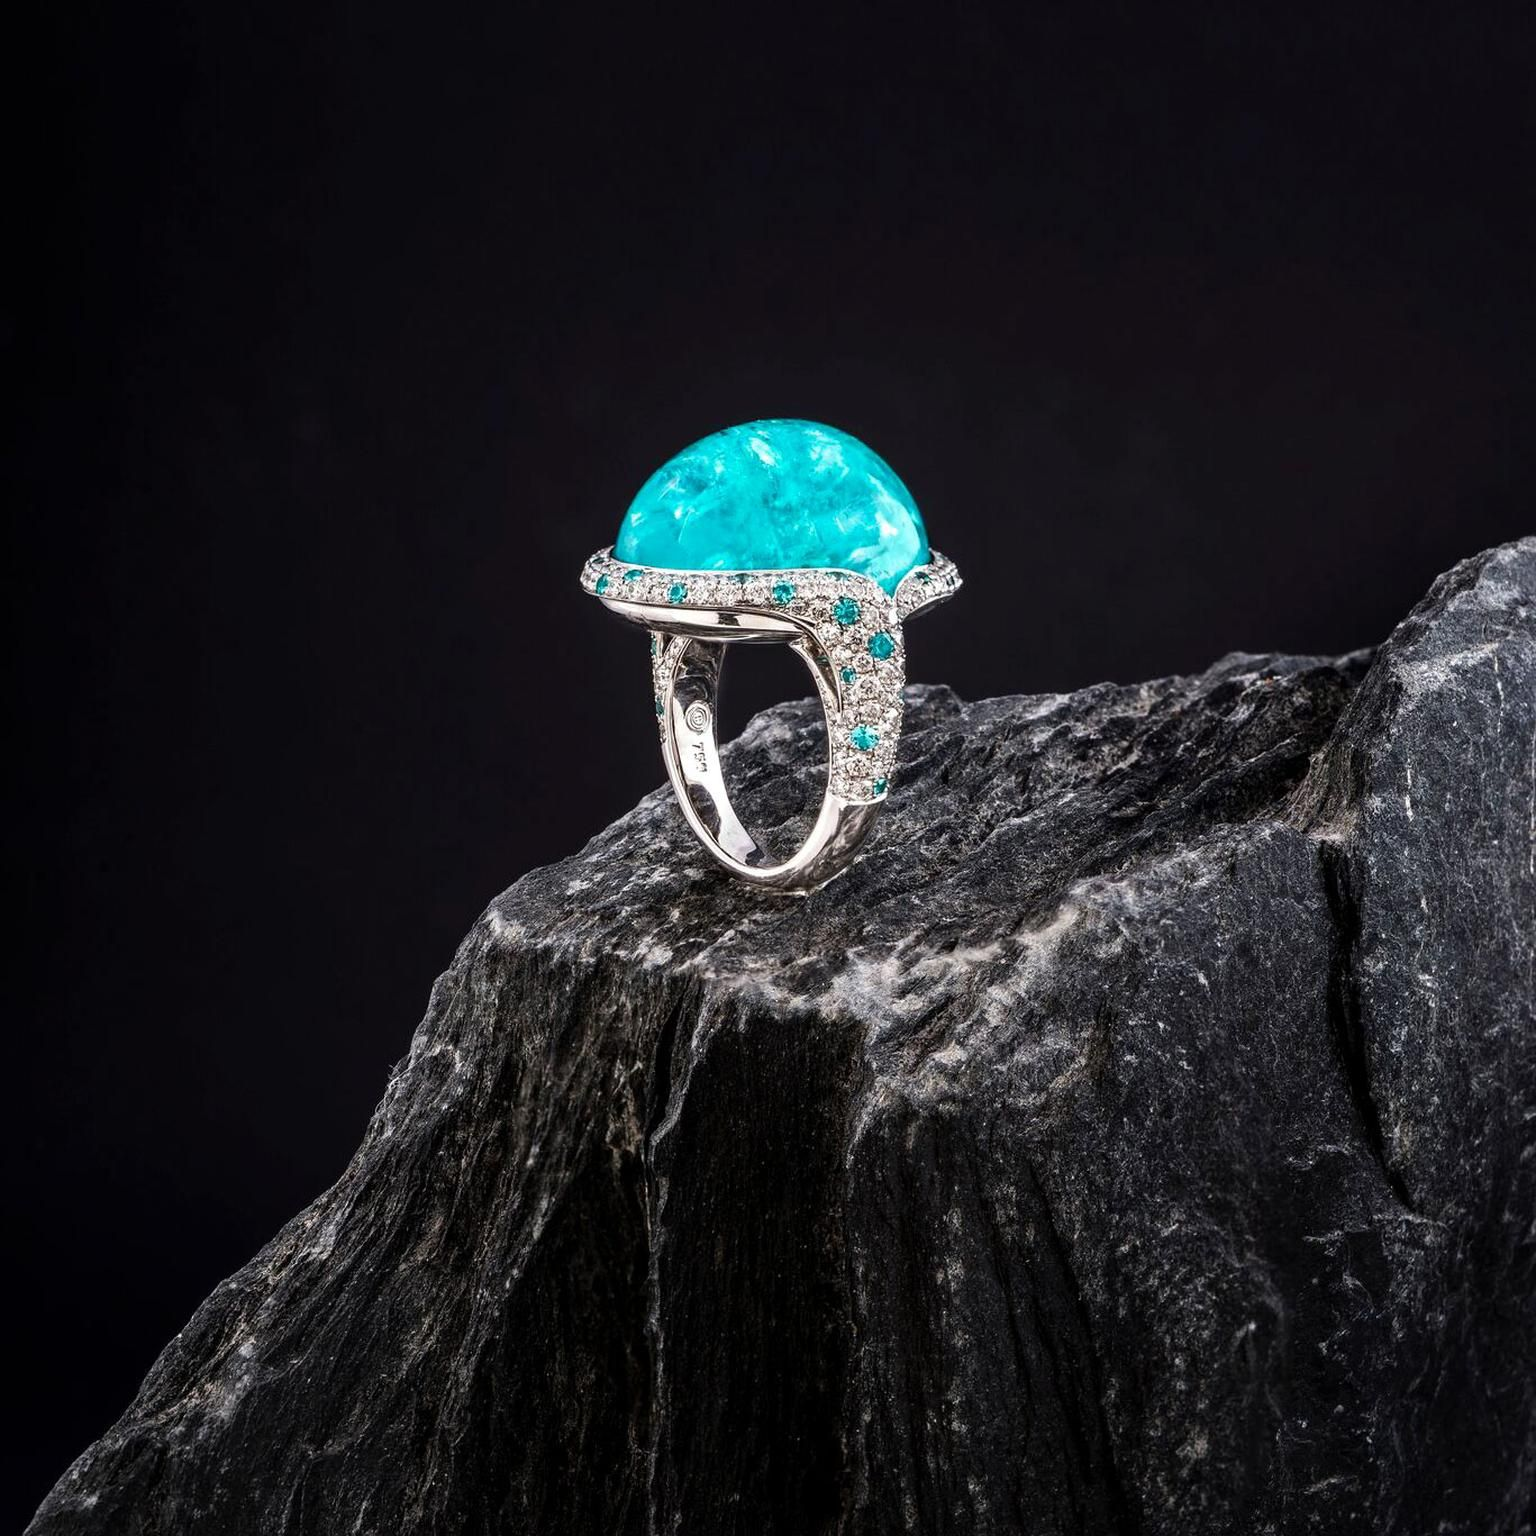 Pin By Steve Sottile On Rings Tourmaline Ring